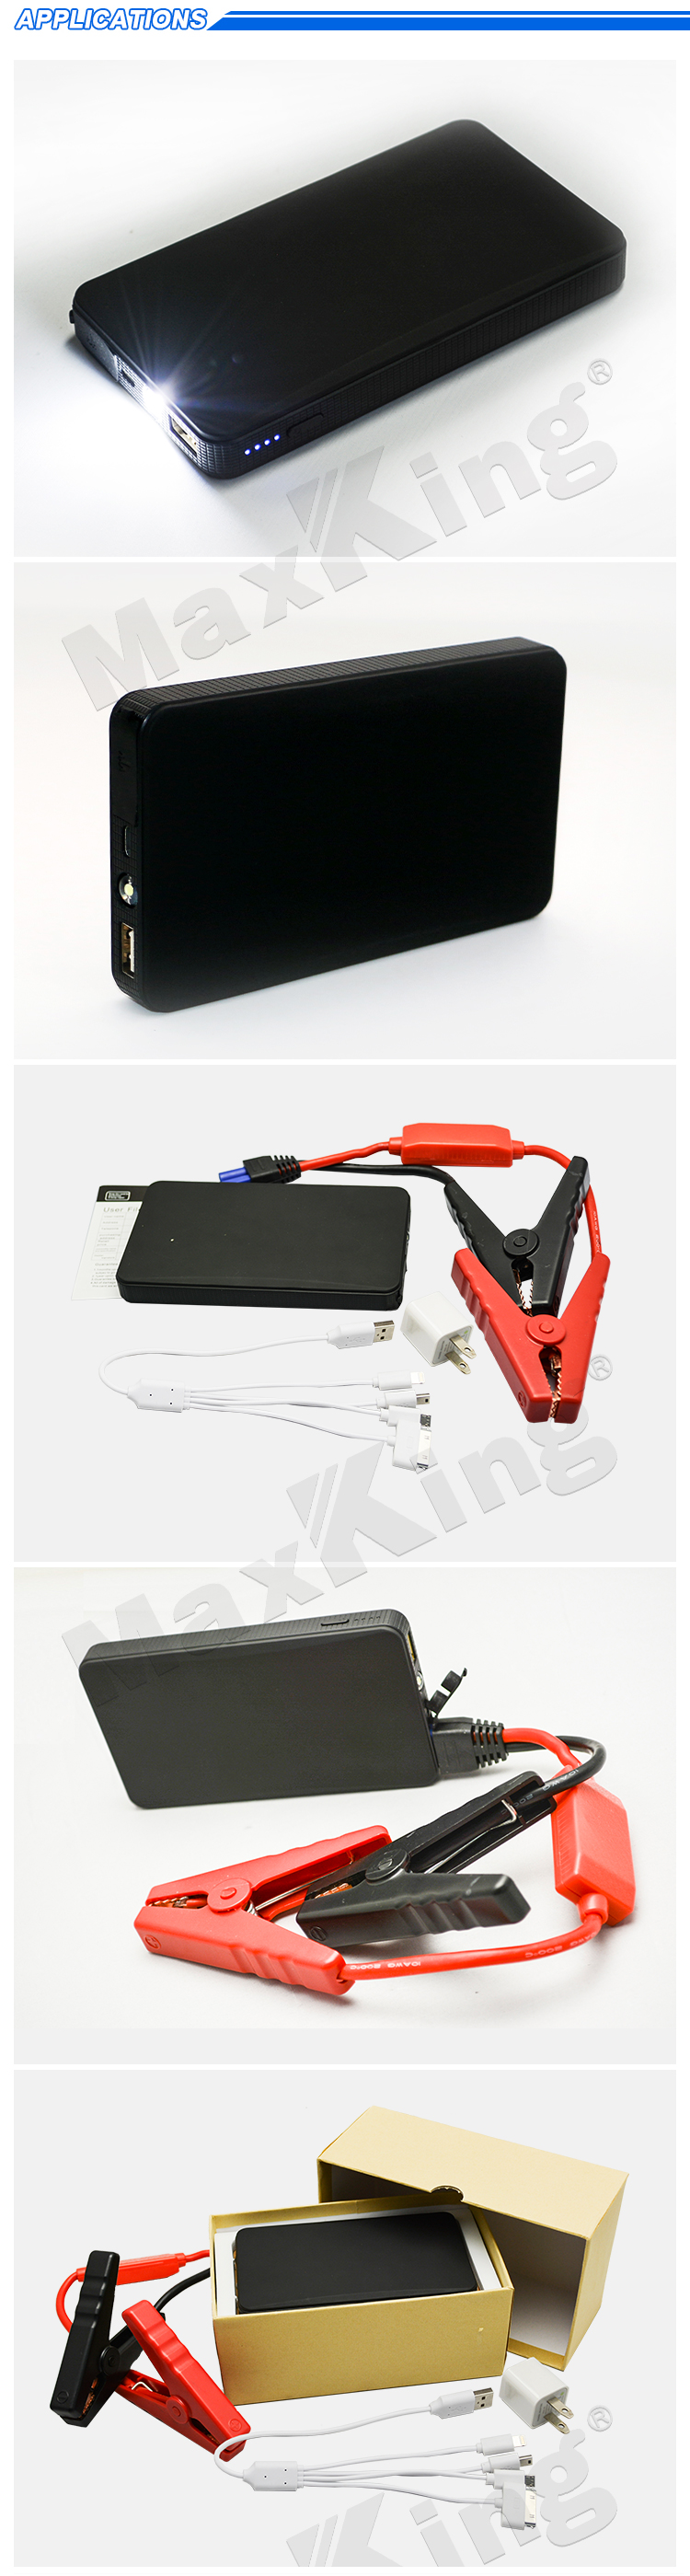 Multi-function jump starter 12V power bank car jump start 8000 mah lithum battery pack